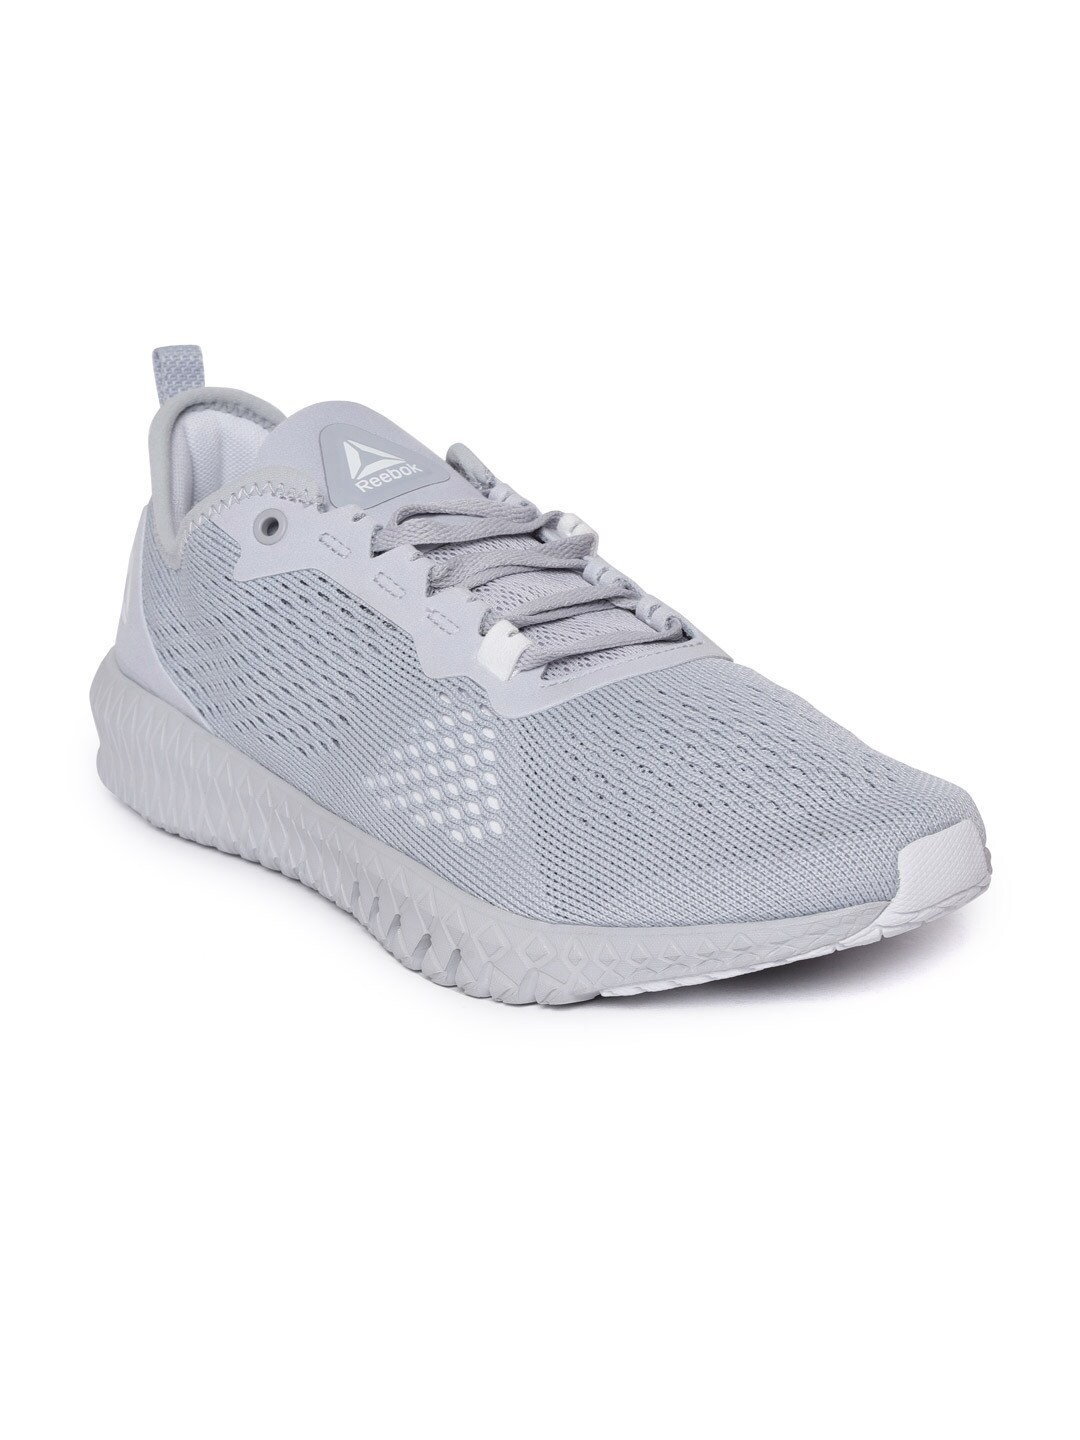 4cf93d362a8 Reebok Grey Shoes - Buy Reebok Grey Shoes online in India